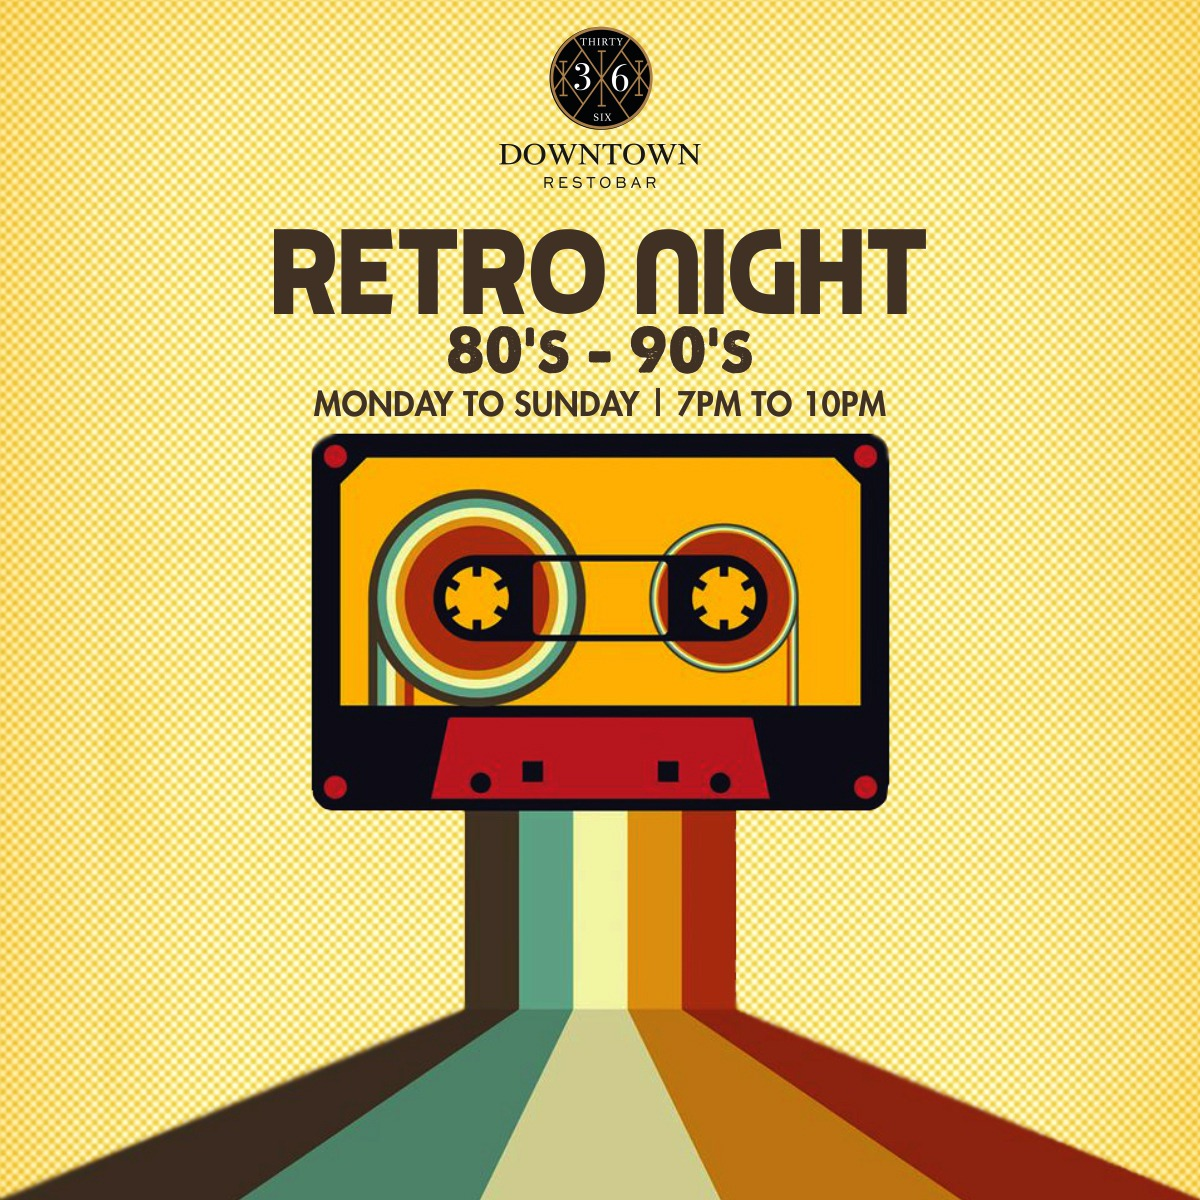 Come groove to retro tunes and enjoy the classic old numbers at @36downtownresto #retro #bar #music #bollywood #mumbai #genres#gig #night #weekend #weekday #swag #dance #jam #drinks#beers #famjam #party #fun #instagood #foodtalkindia #dance#eatoholic #weekendsvibes #nofilter